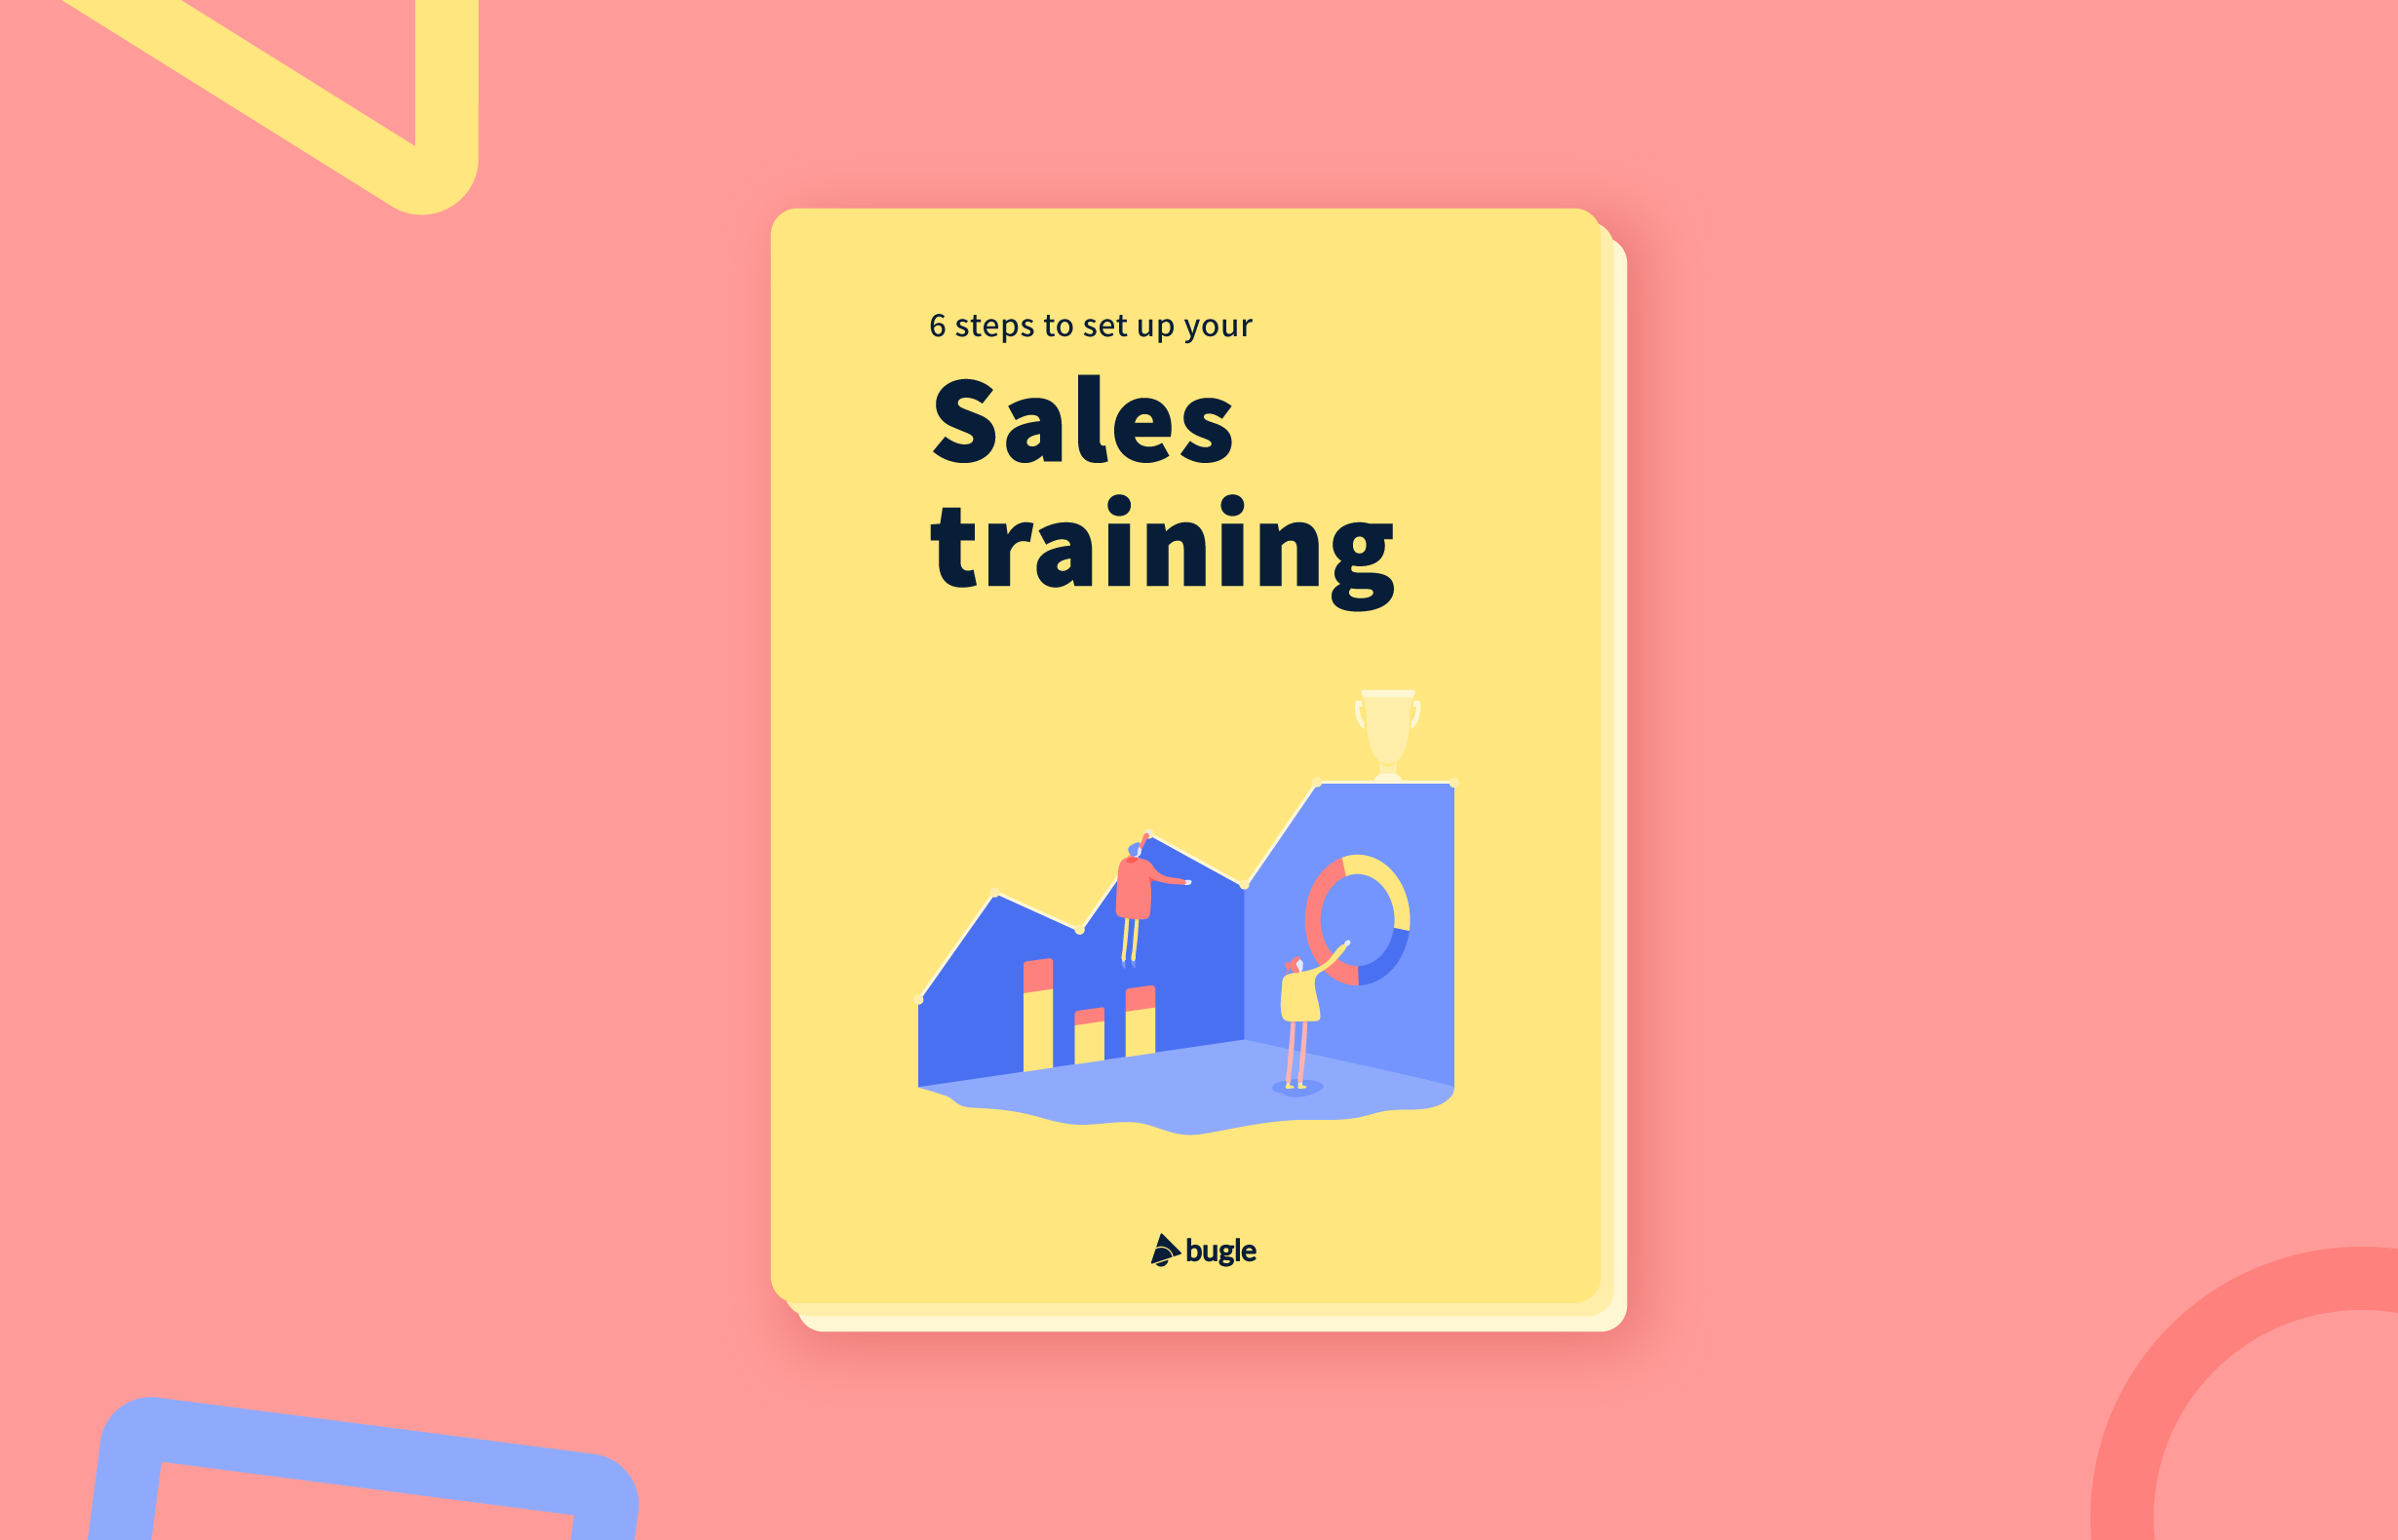 6 Steps To Set Up Sales Training